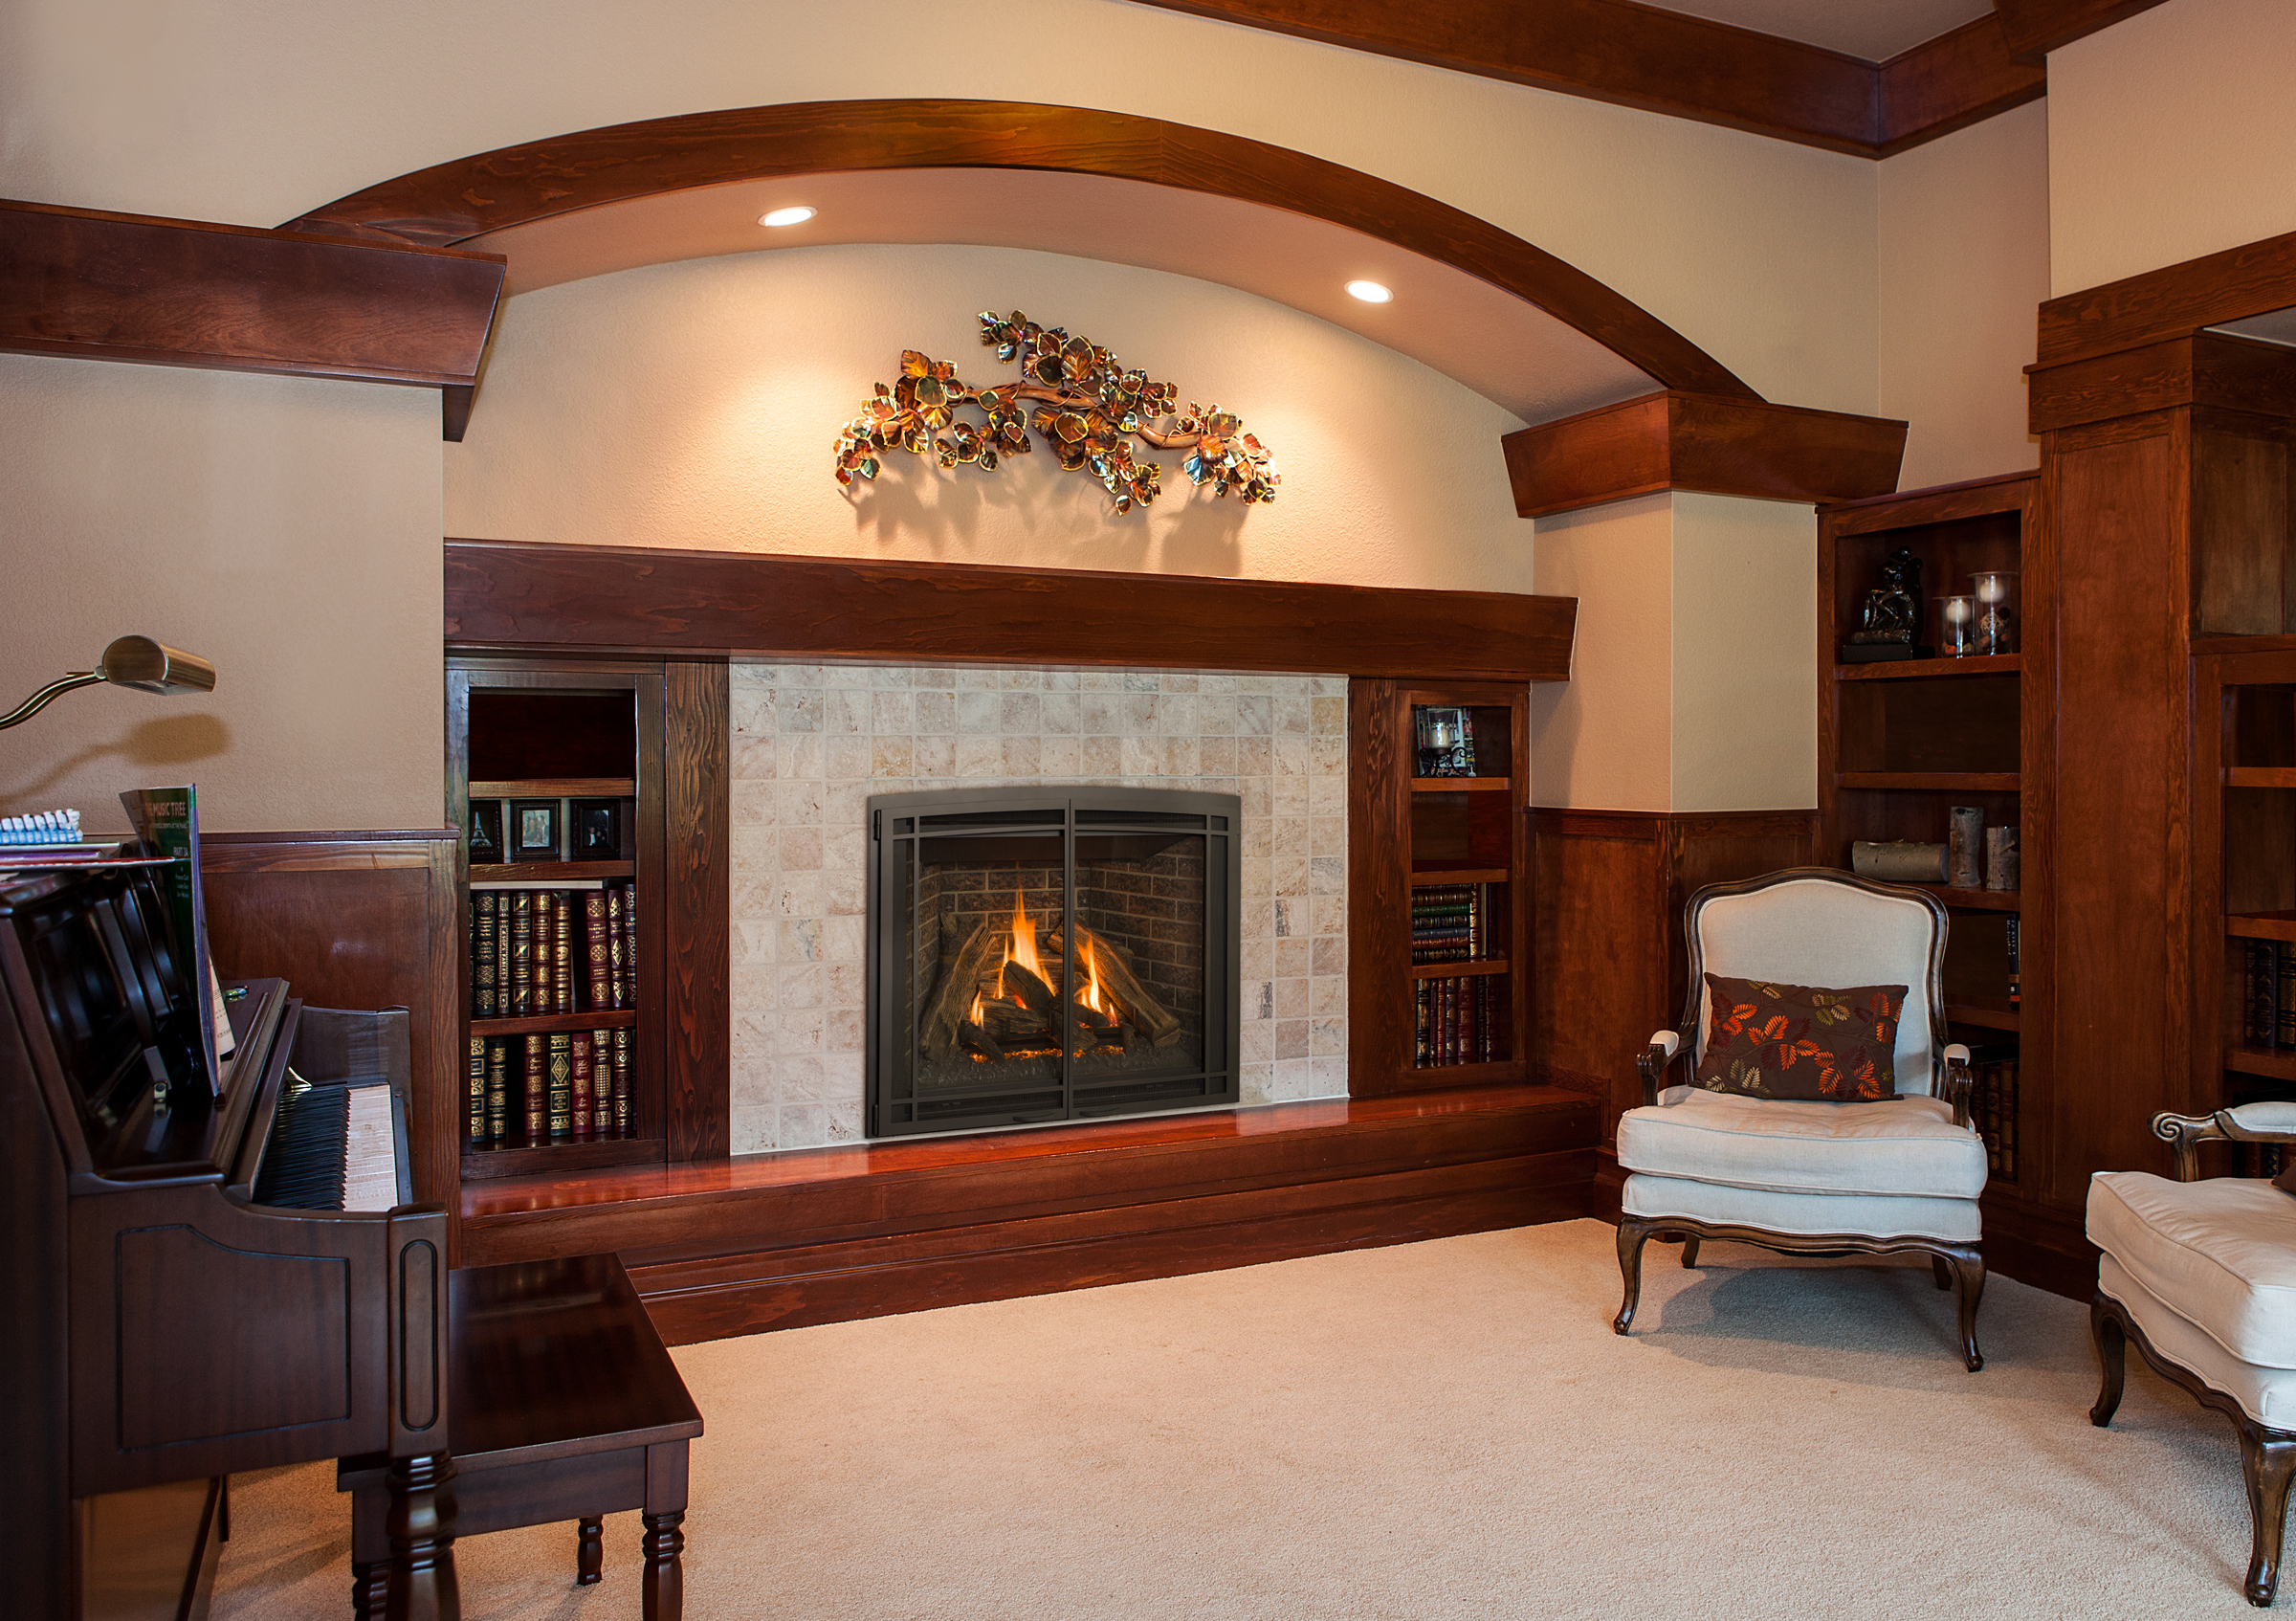 gas vs wood fireplace u2013 facts that can help you make an informed